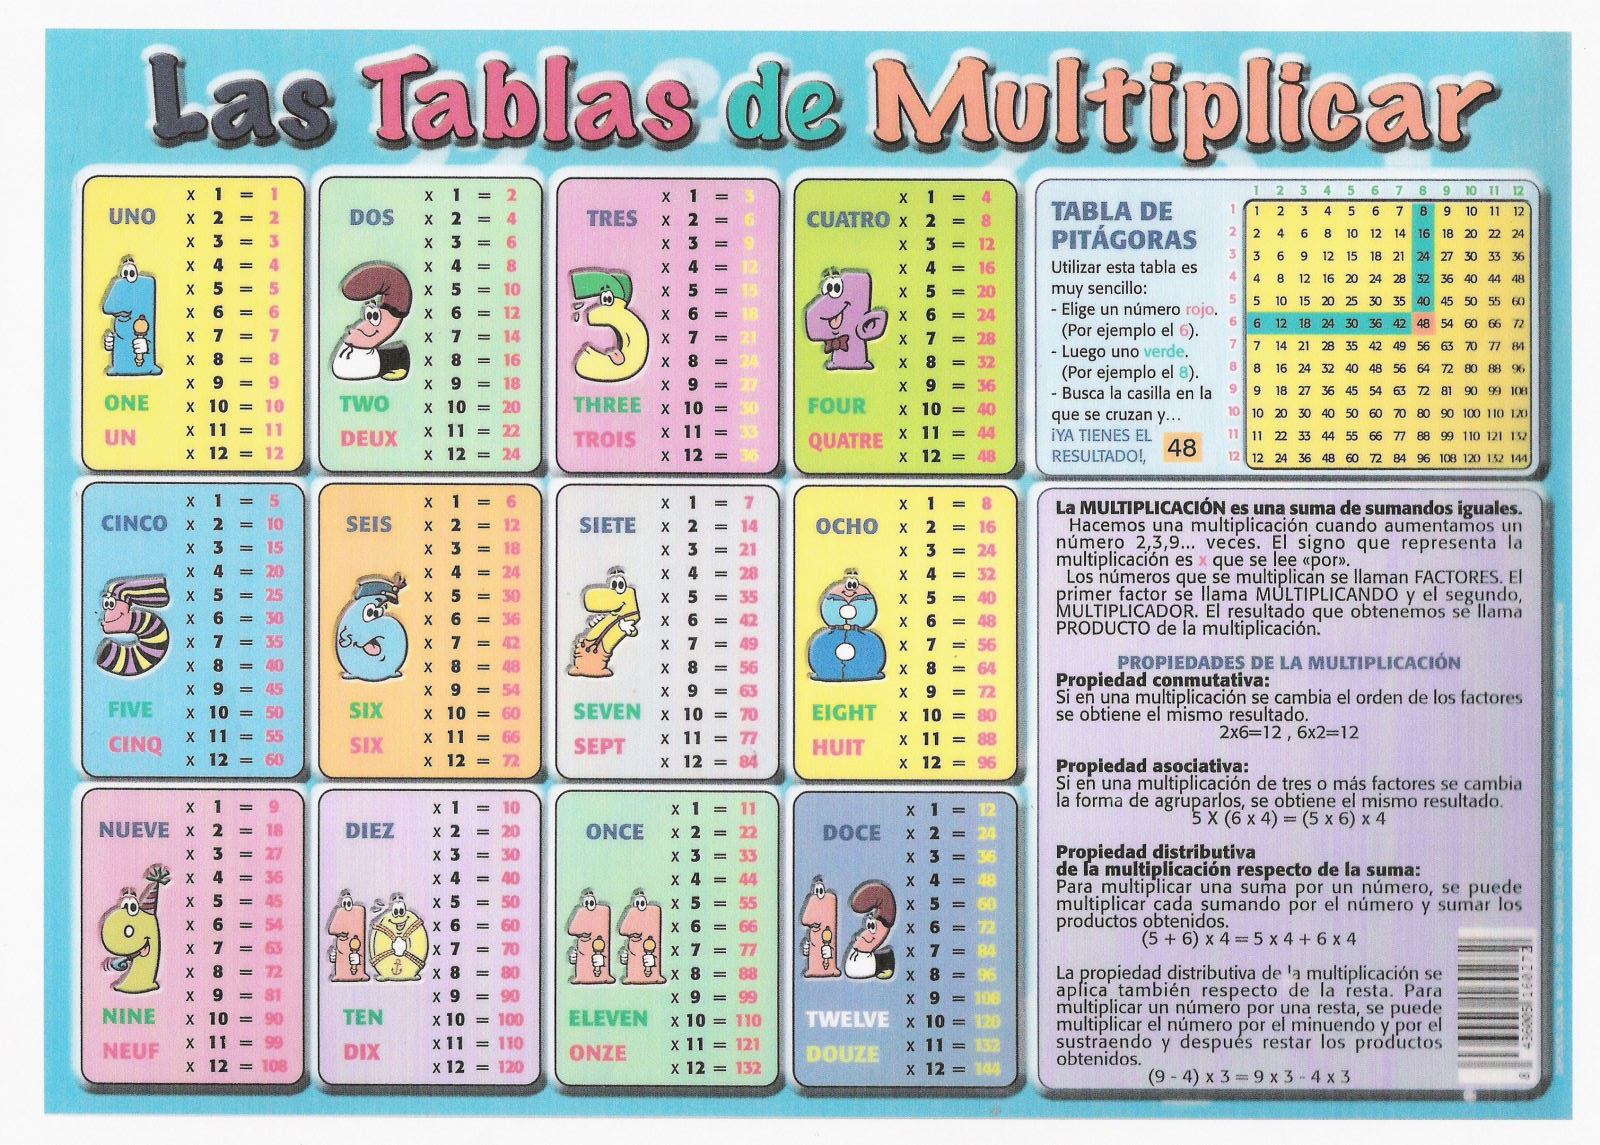 ... tablas de multiplicar de spiderman la oca de las tablas de multiplicar